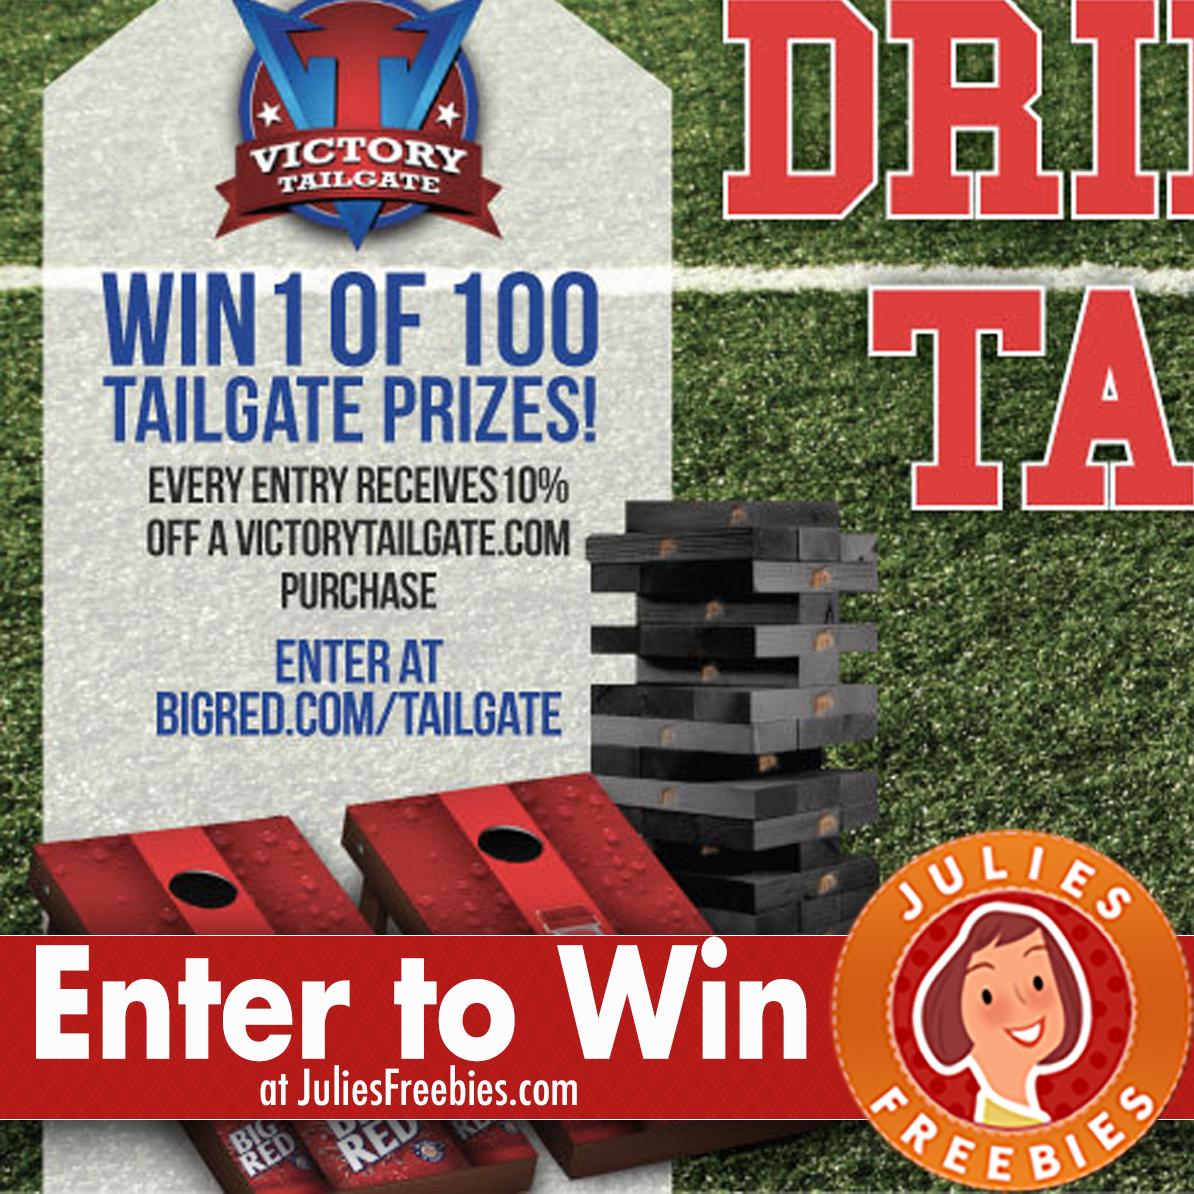 Victory tailgate coupon code